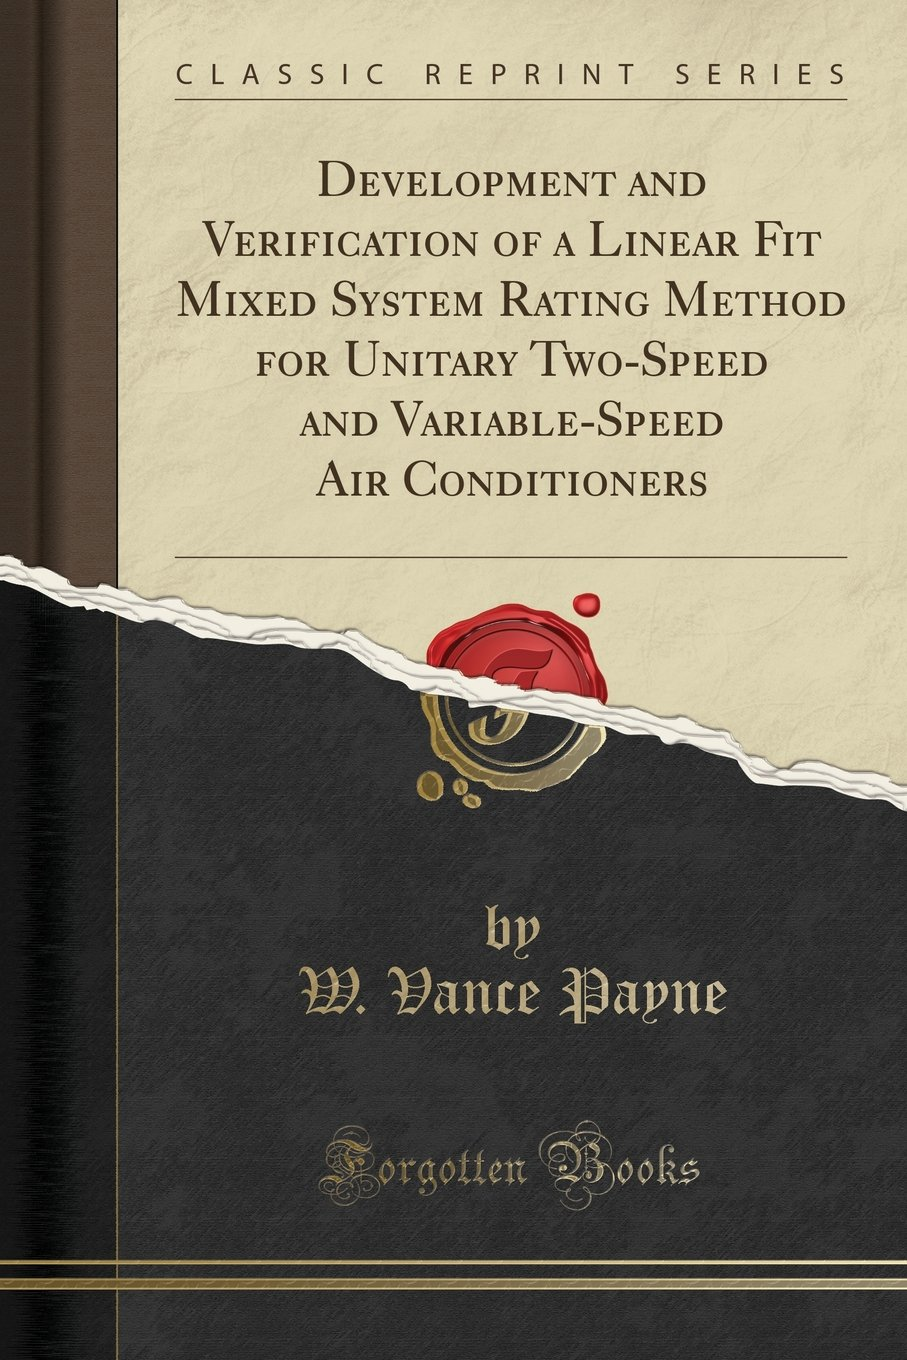 Read Online Development and Verification of a Linear Fit Mixed System Rating Method for Unitary Two-Speed and Variable-Speed Air Conditioners (Classic Reprint) ebook